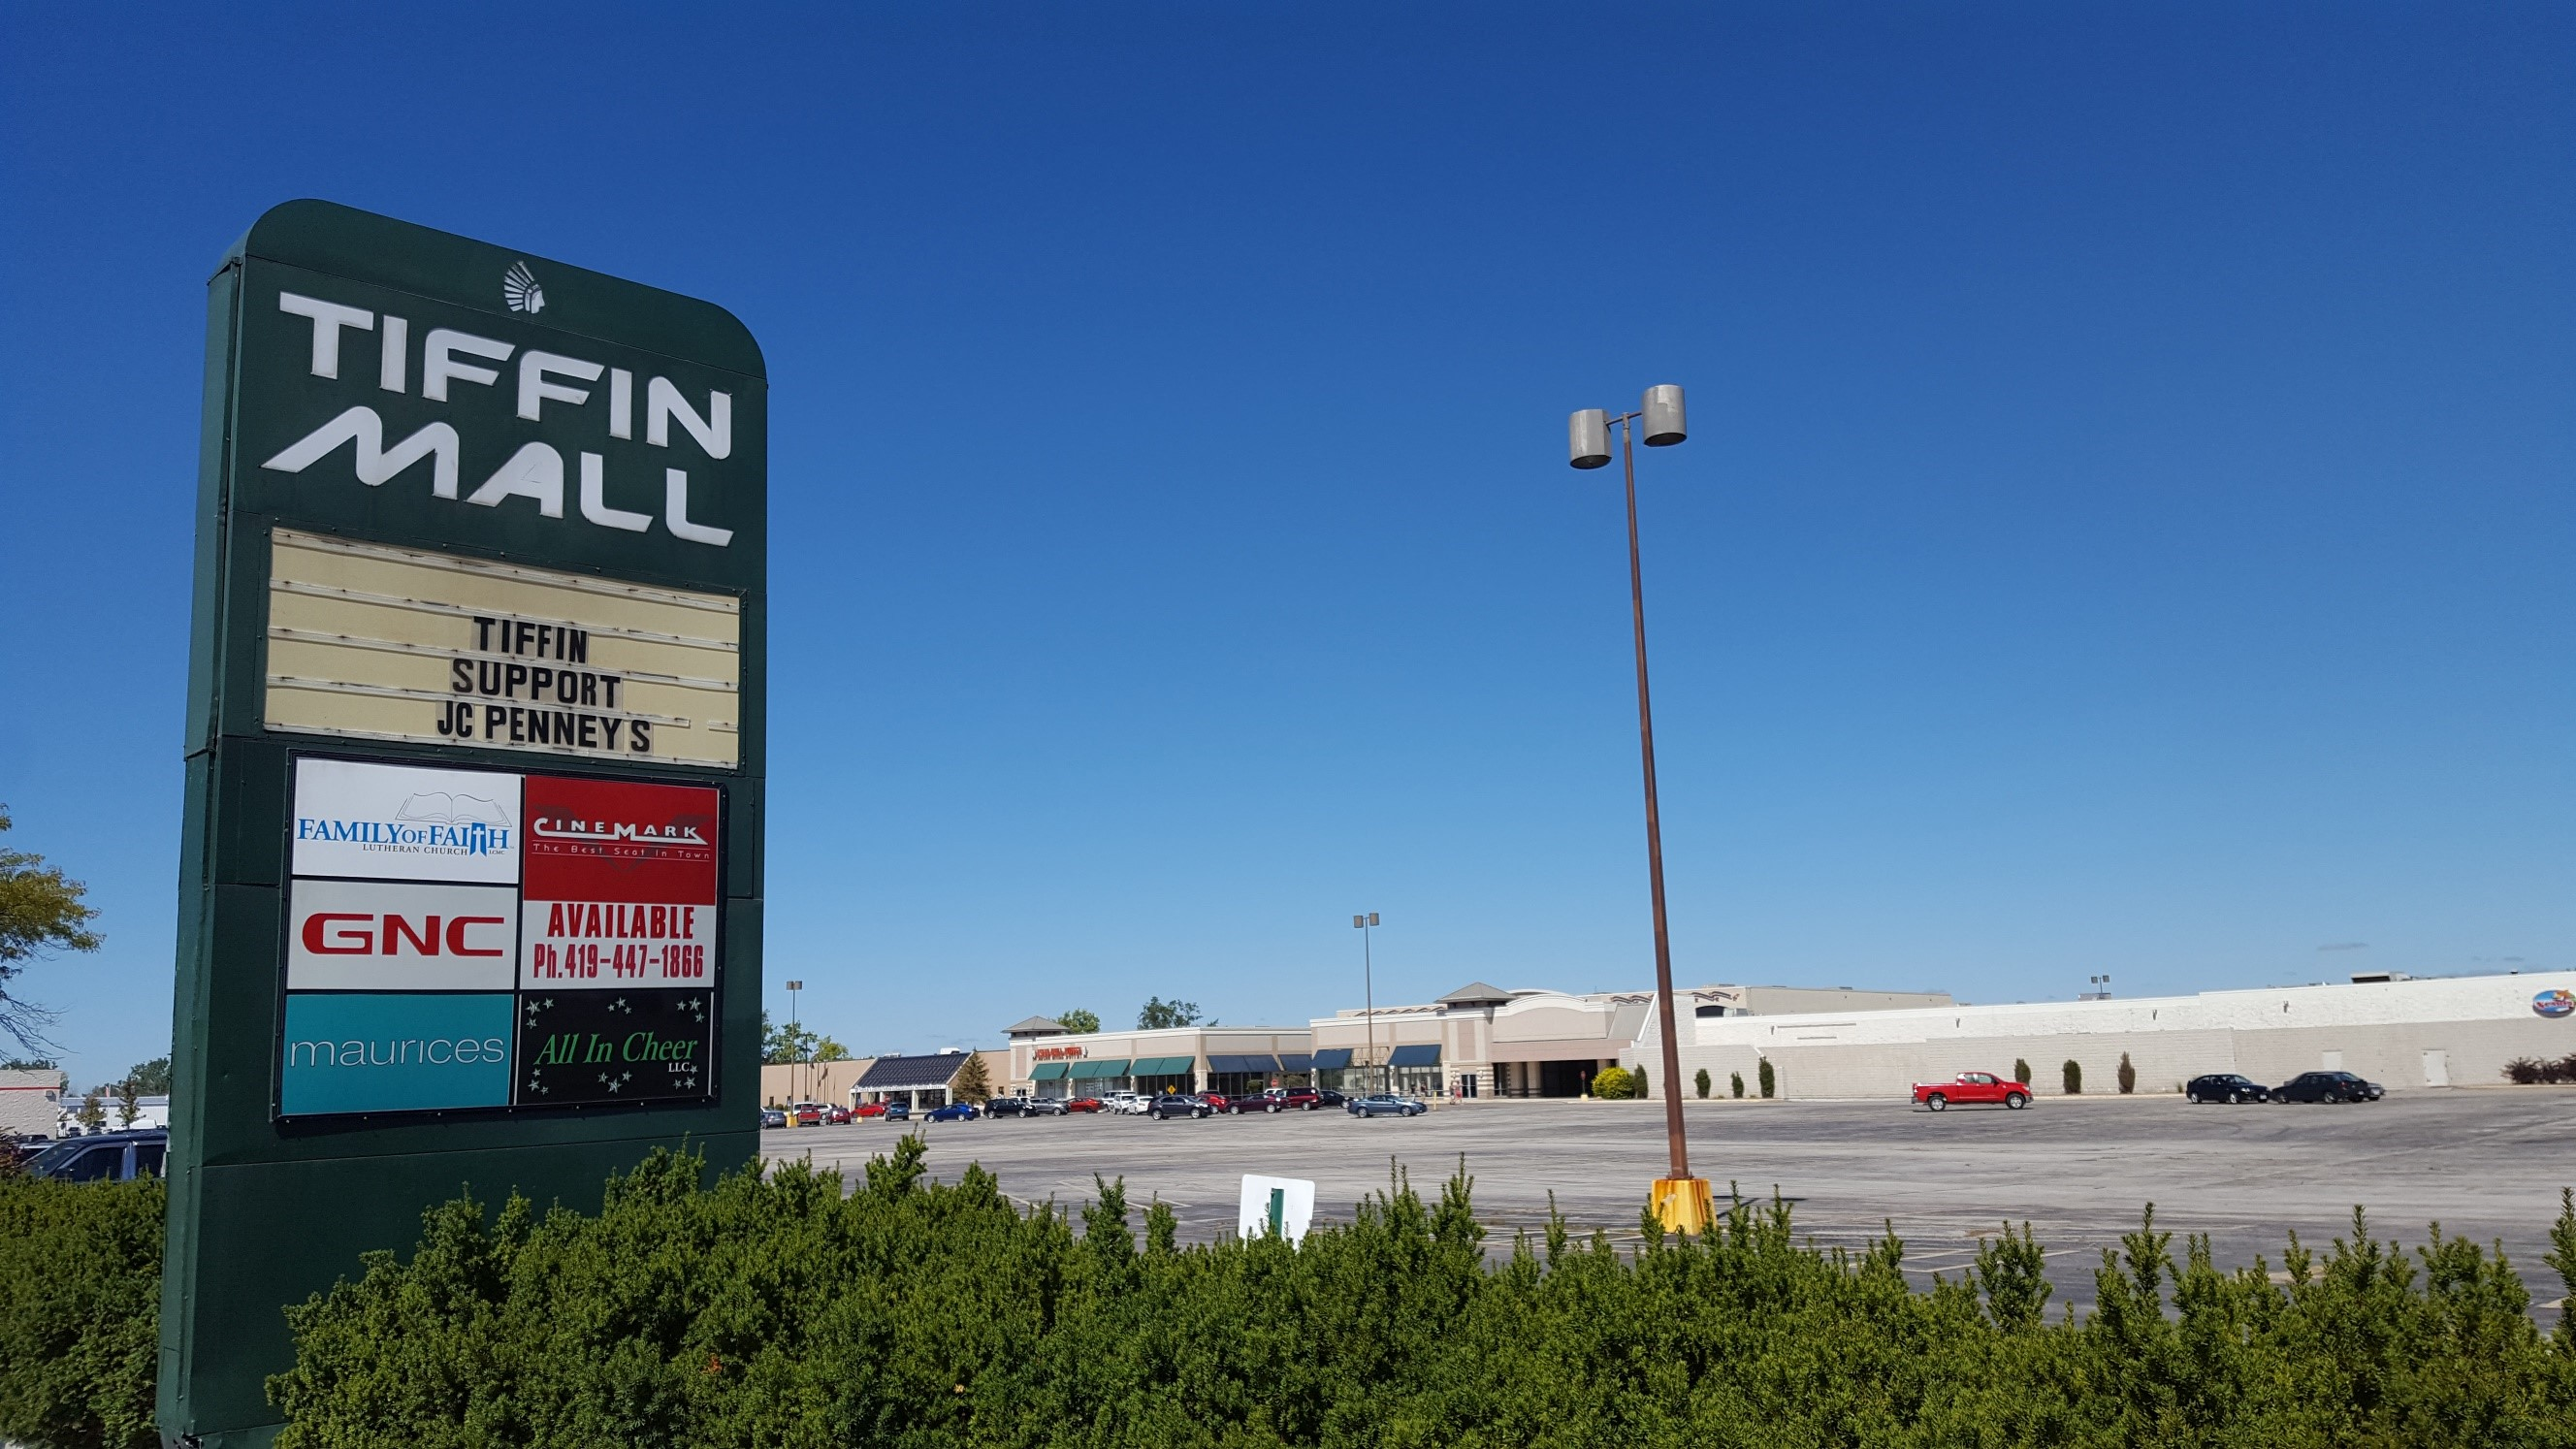 tiffin mall sign